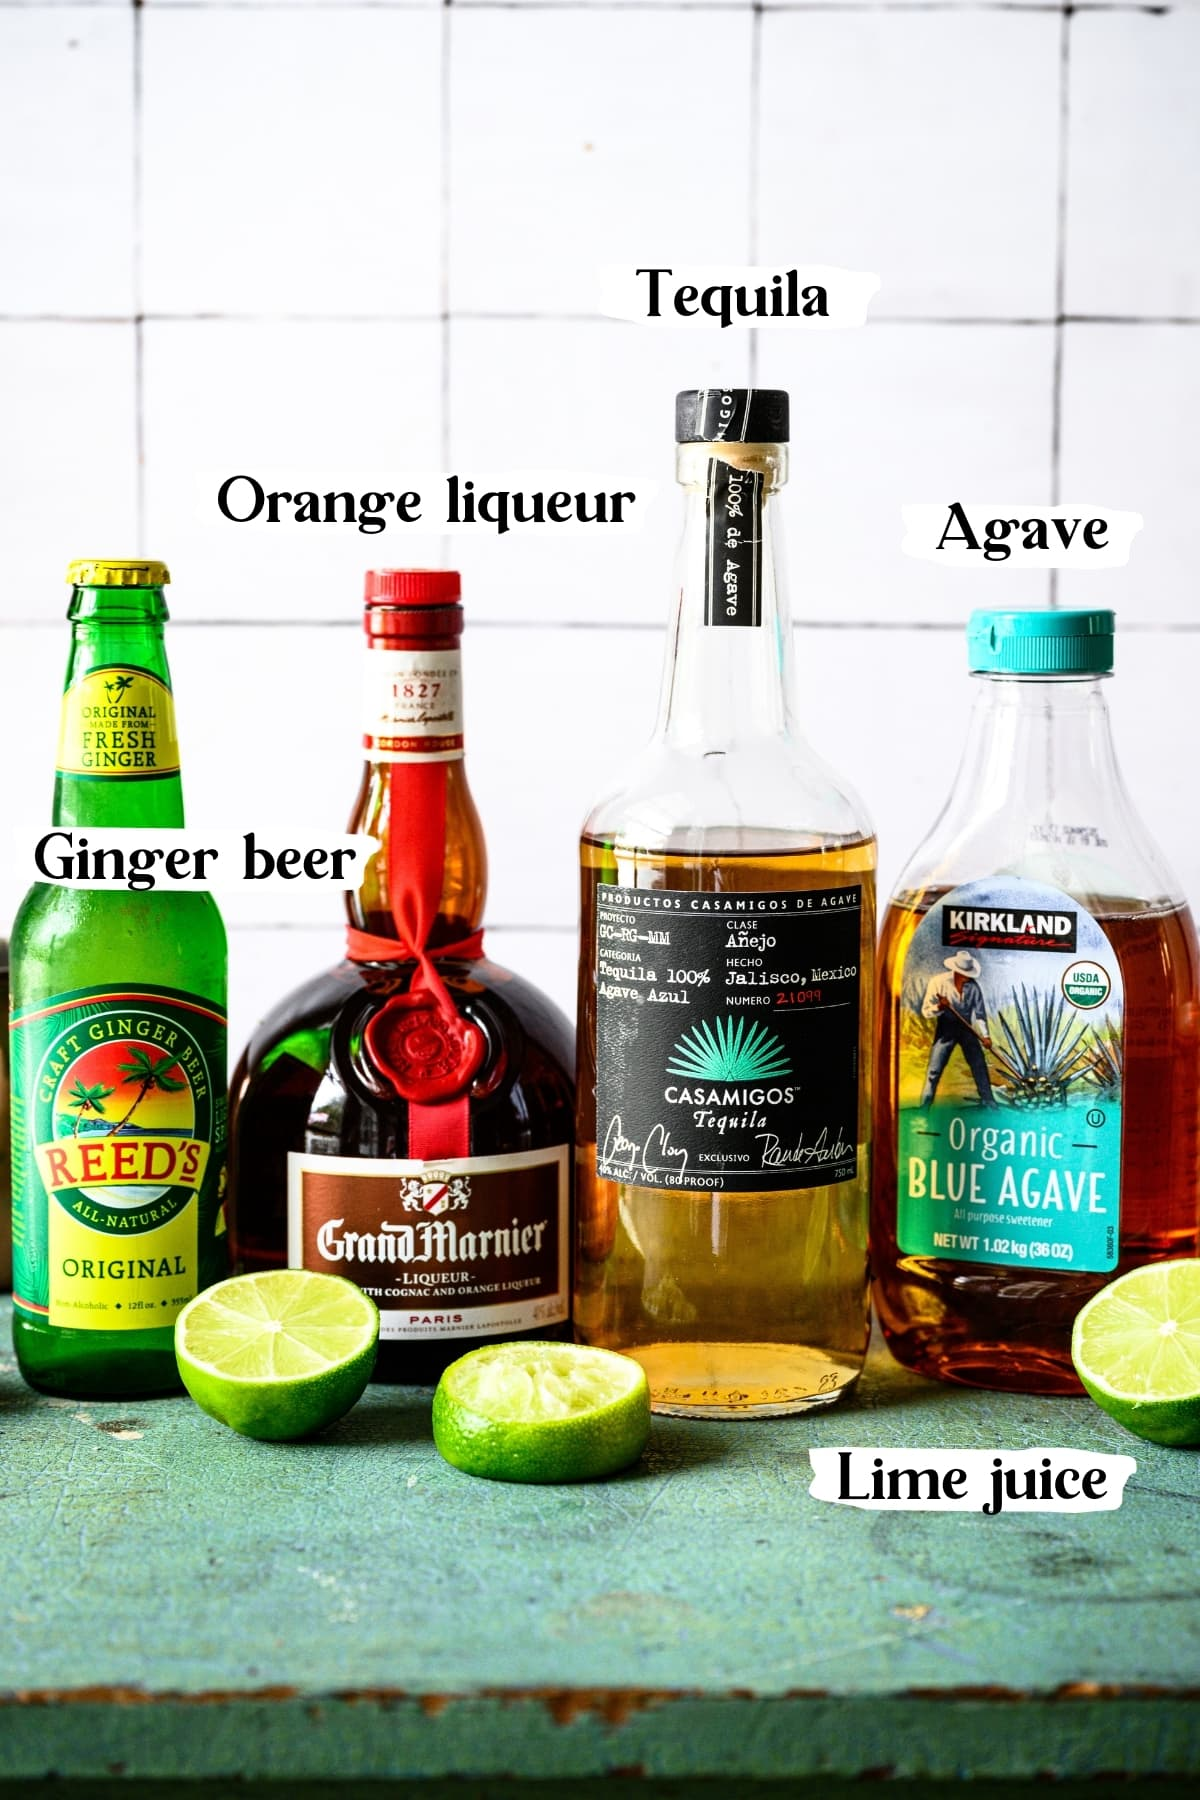 side view of ingredients for tequila mules, including ginger beer, tequila, Grand Marnier and agave.